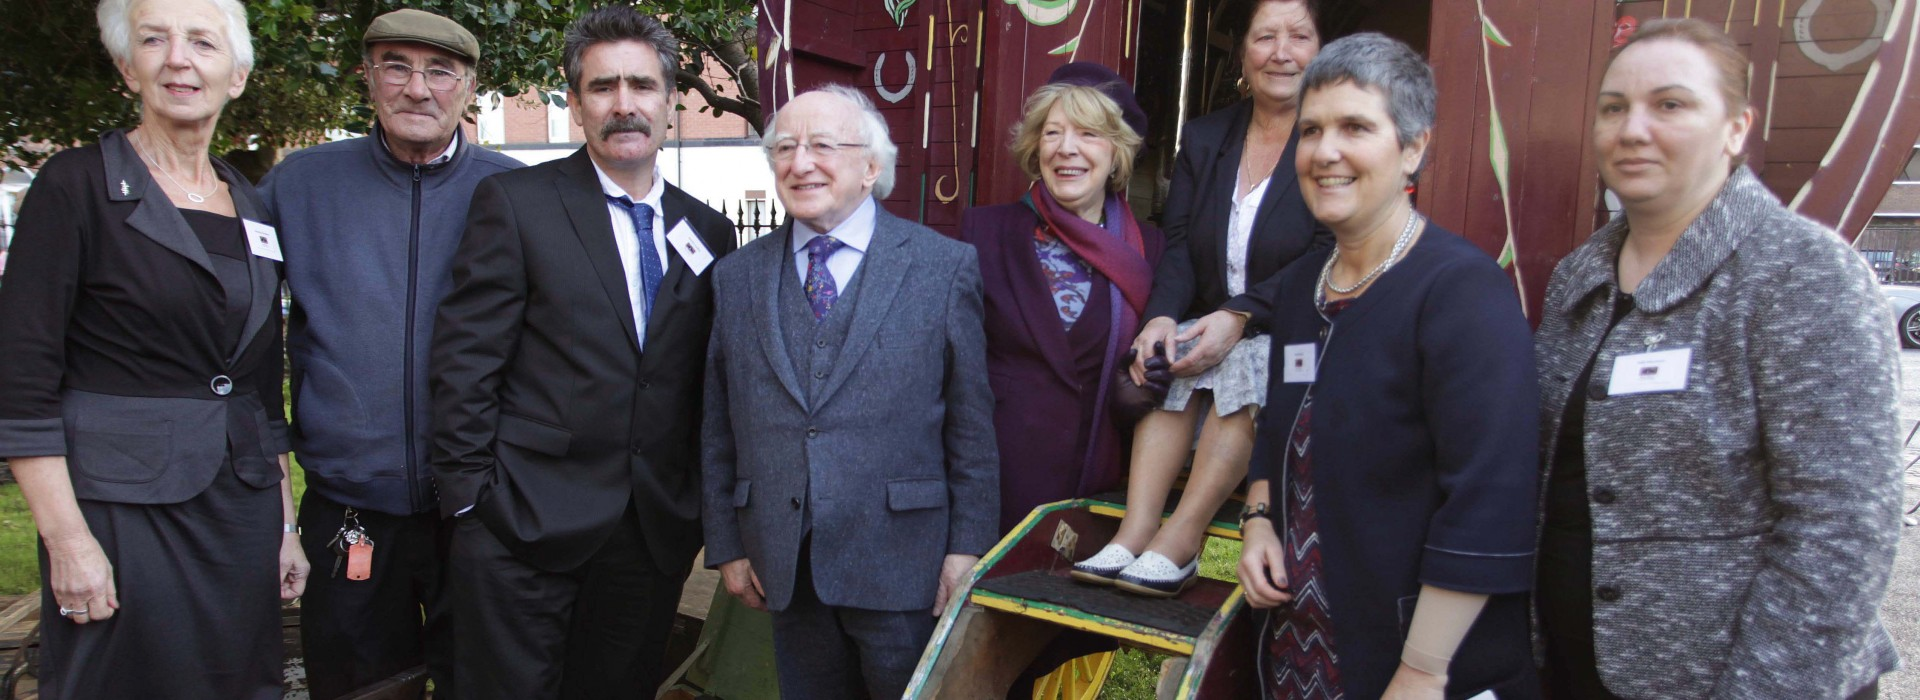 18.11.15. Dublin. Pavee Point Traveller & Roma Centre 30th Anniversary Event, attended by Guest of Honour, President of Ireland, Michael D. Higgins and his wife Sabina, here with L to R, Stasia Crickley Chairperson Pavee Point, James Collins Tinsmith, Martin Collins Co-Director Pavee Point, Molly Collins, Ronnie Fay Co-Director Pavee Point and Gabi Muntean. ©Photo by Derek Speirs